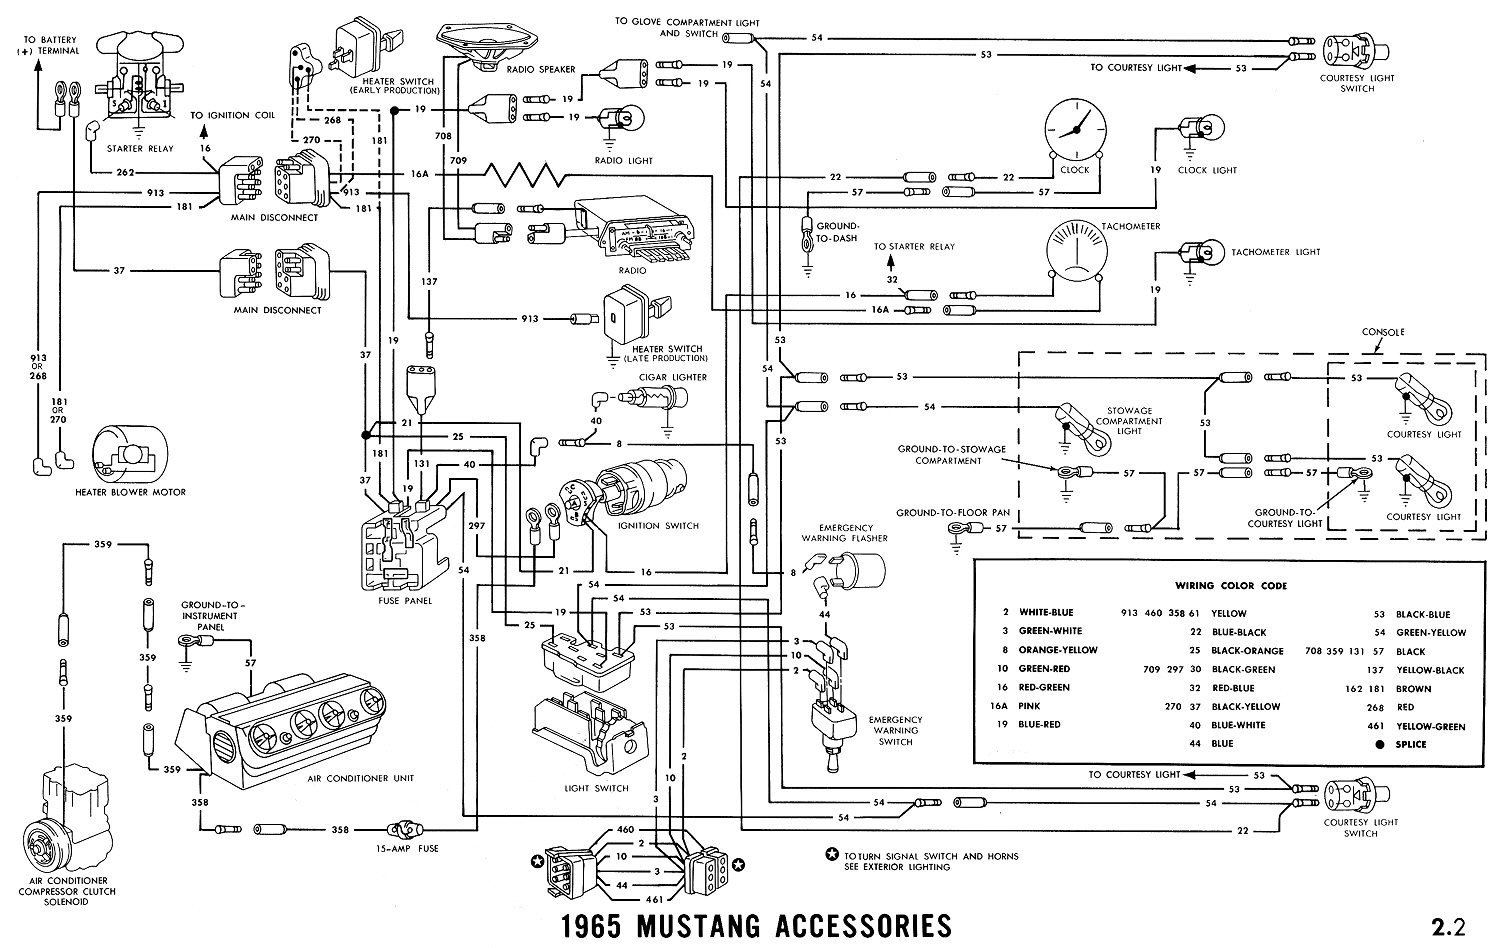 1965i 1965 mustang wiring diagrams average joe restoration Turn Signal Relay Wiring Diagram at mifinder.co